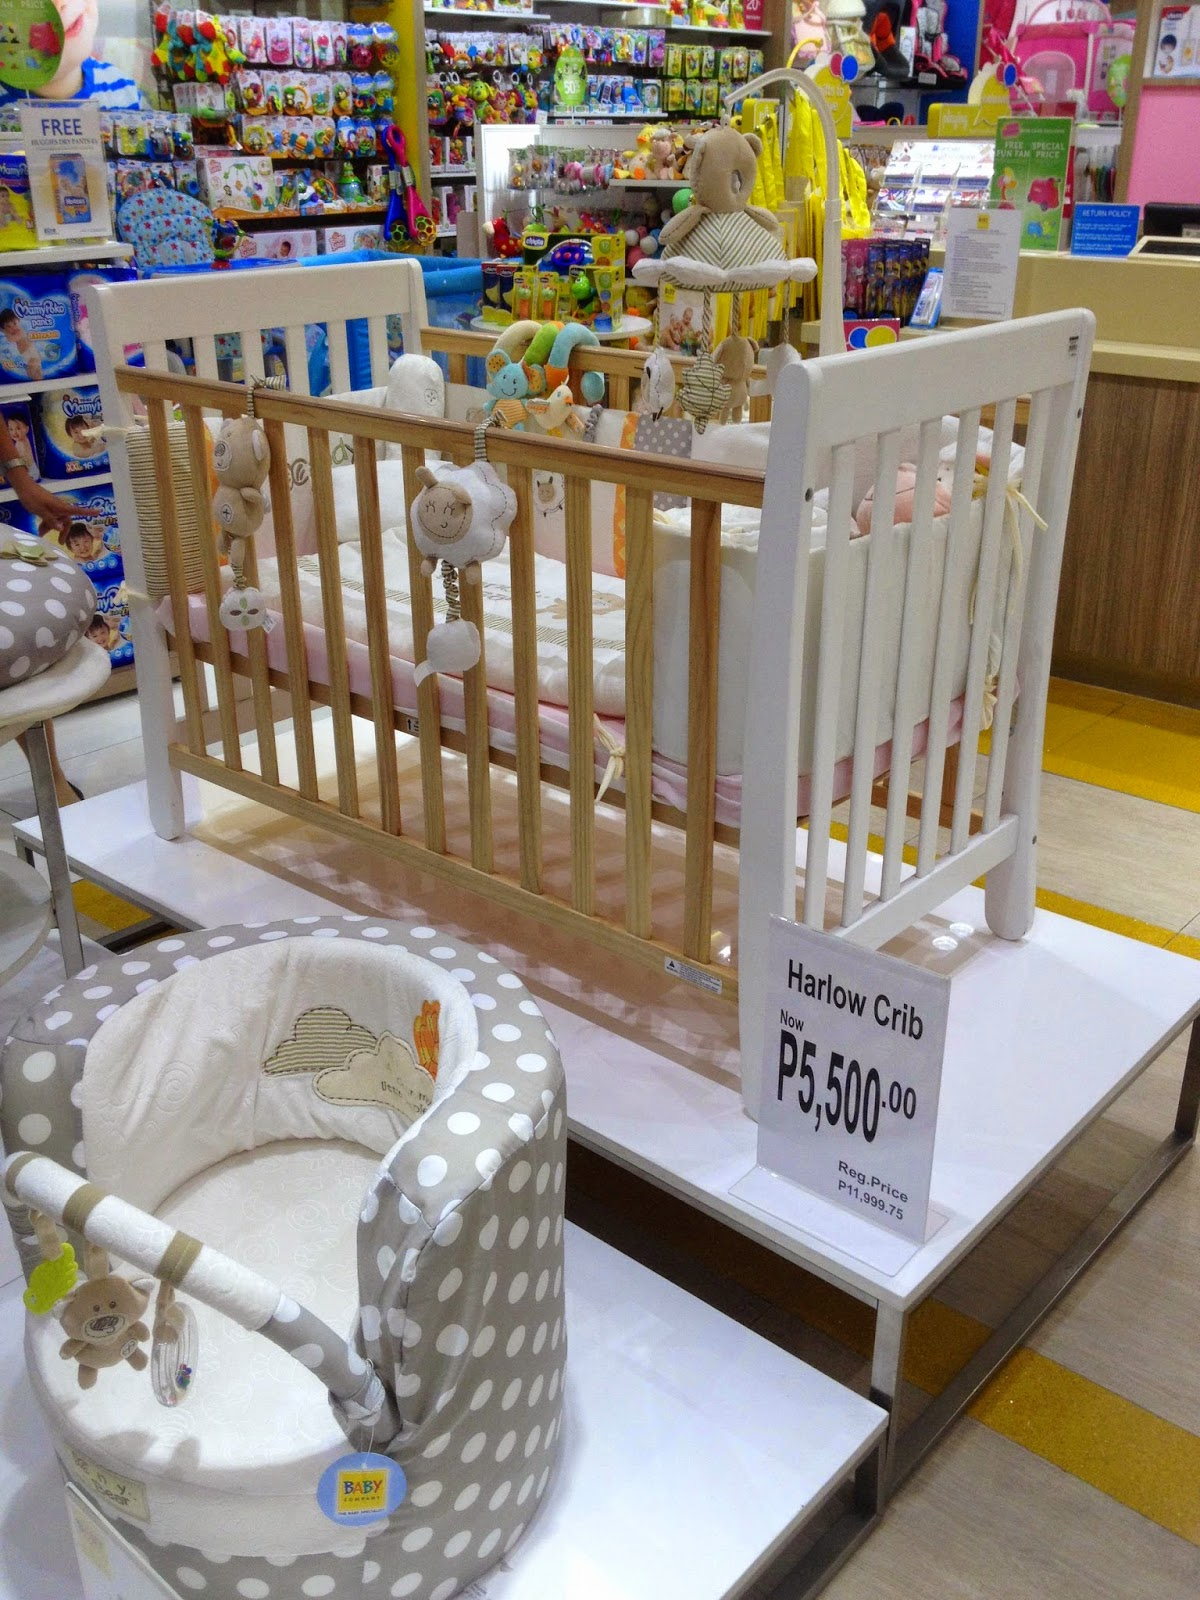 Crib for babies philippines - Harlow Crib 24x48